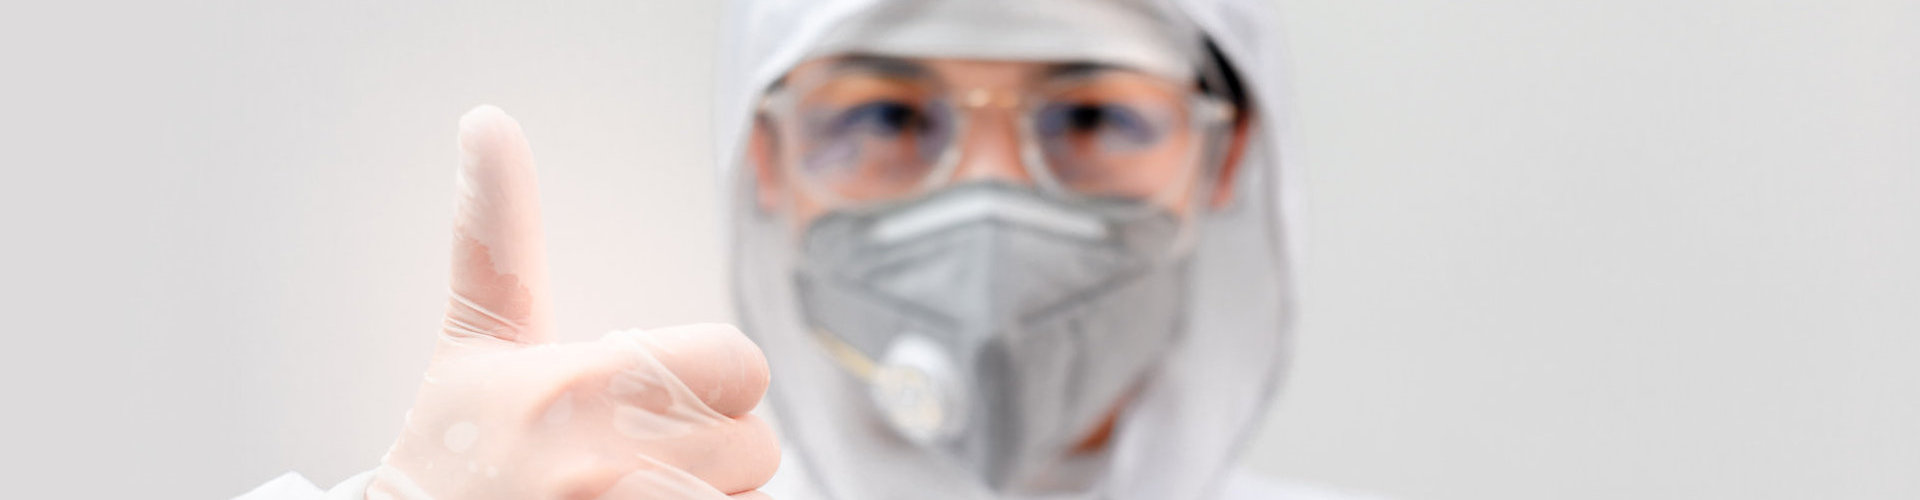 medical staff wearing PPE doing OK sign